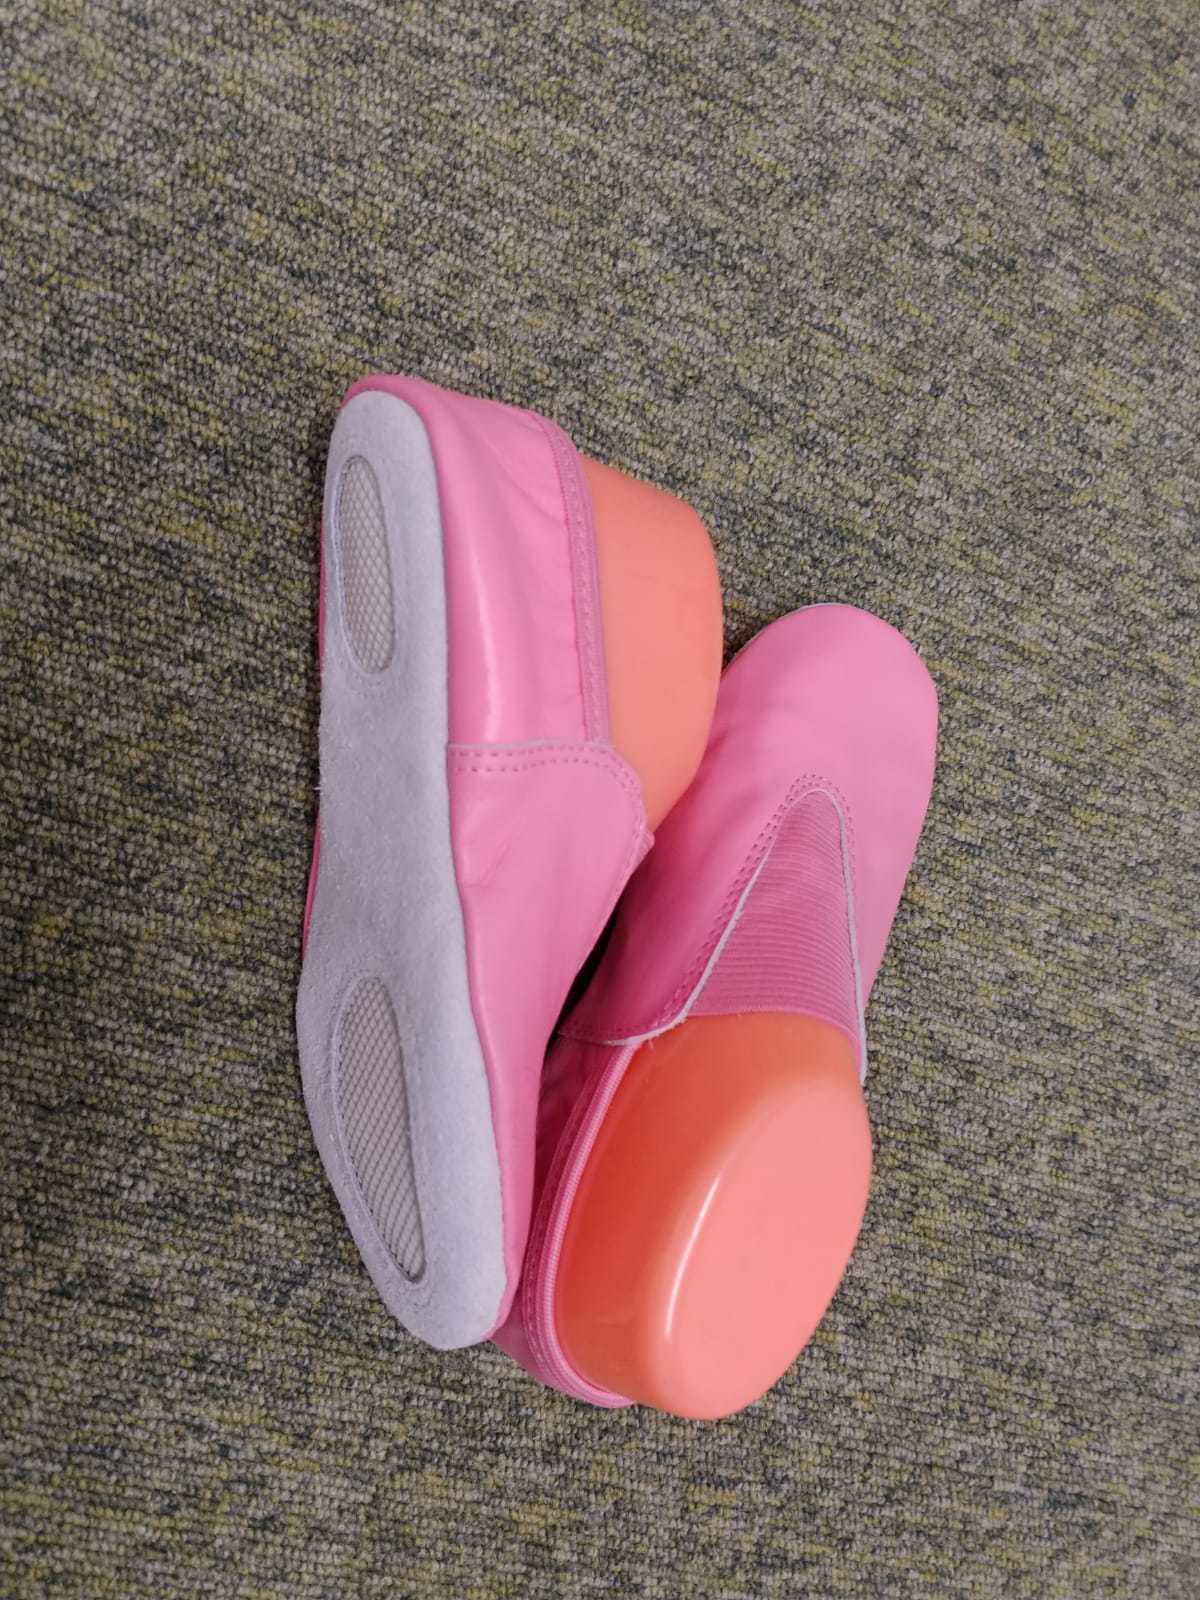 PINK LEATHER TRAMPOLINING /SLIPPER/ GYMNASTIC SHOES UNISEX